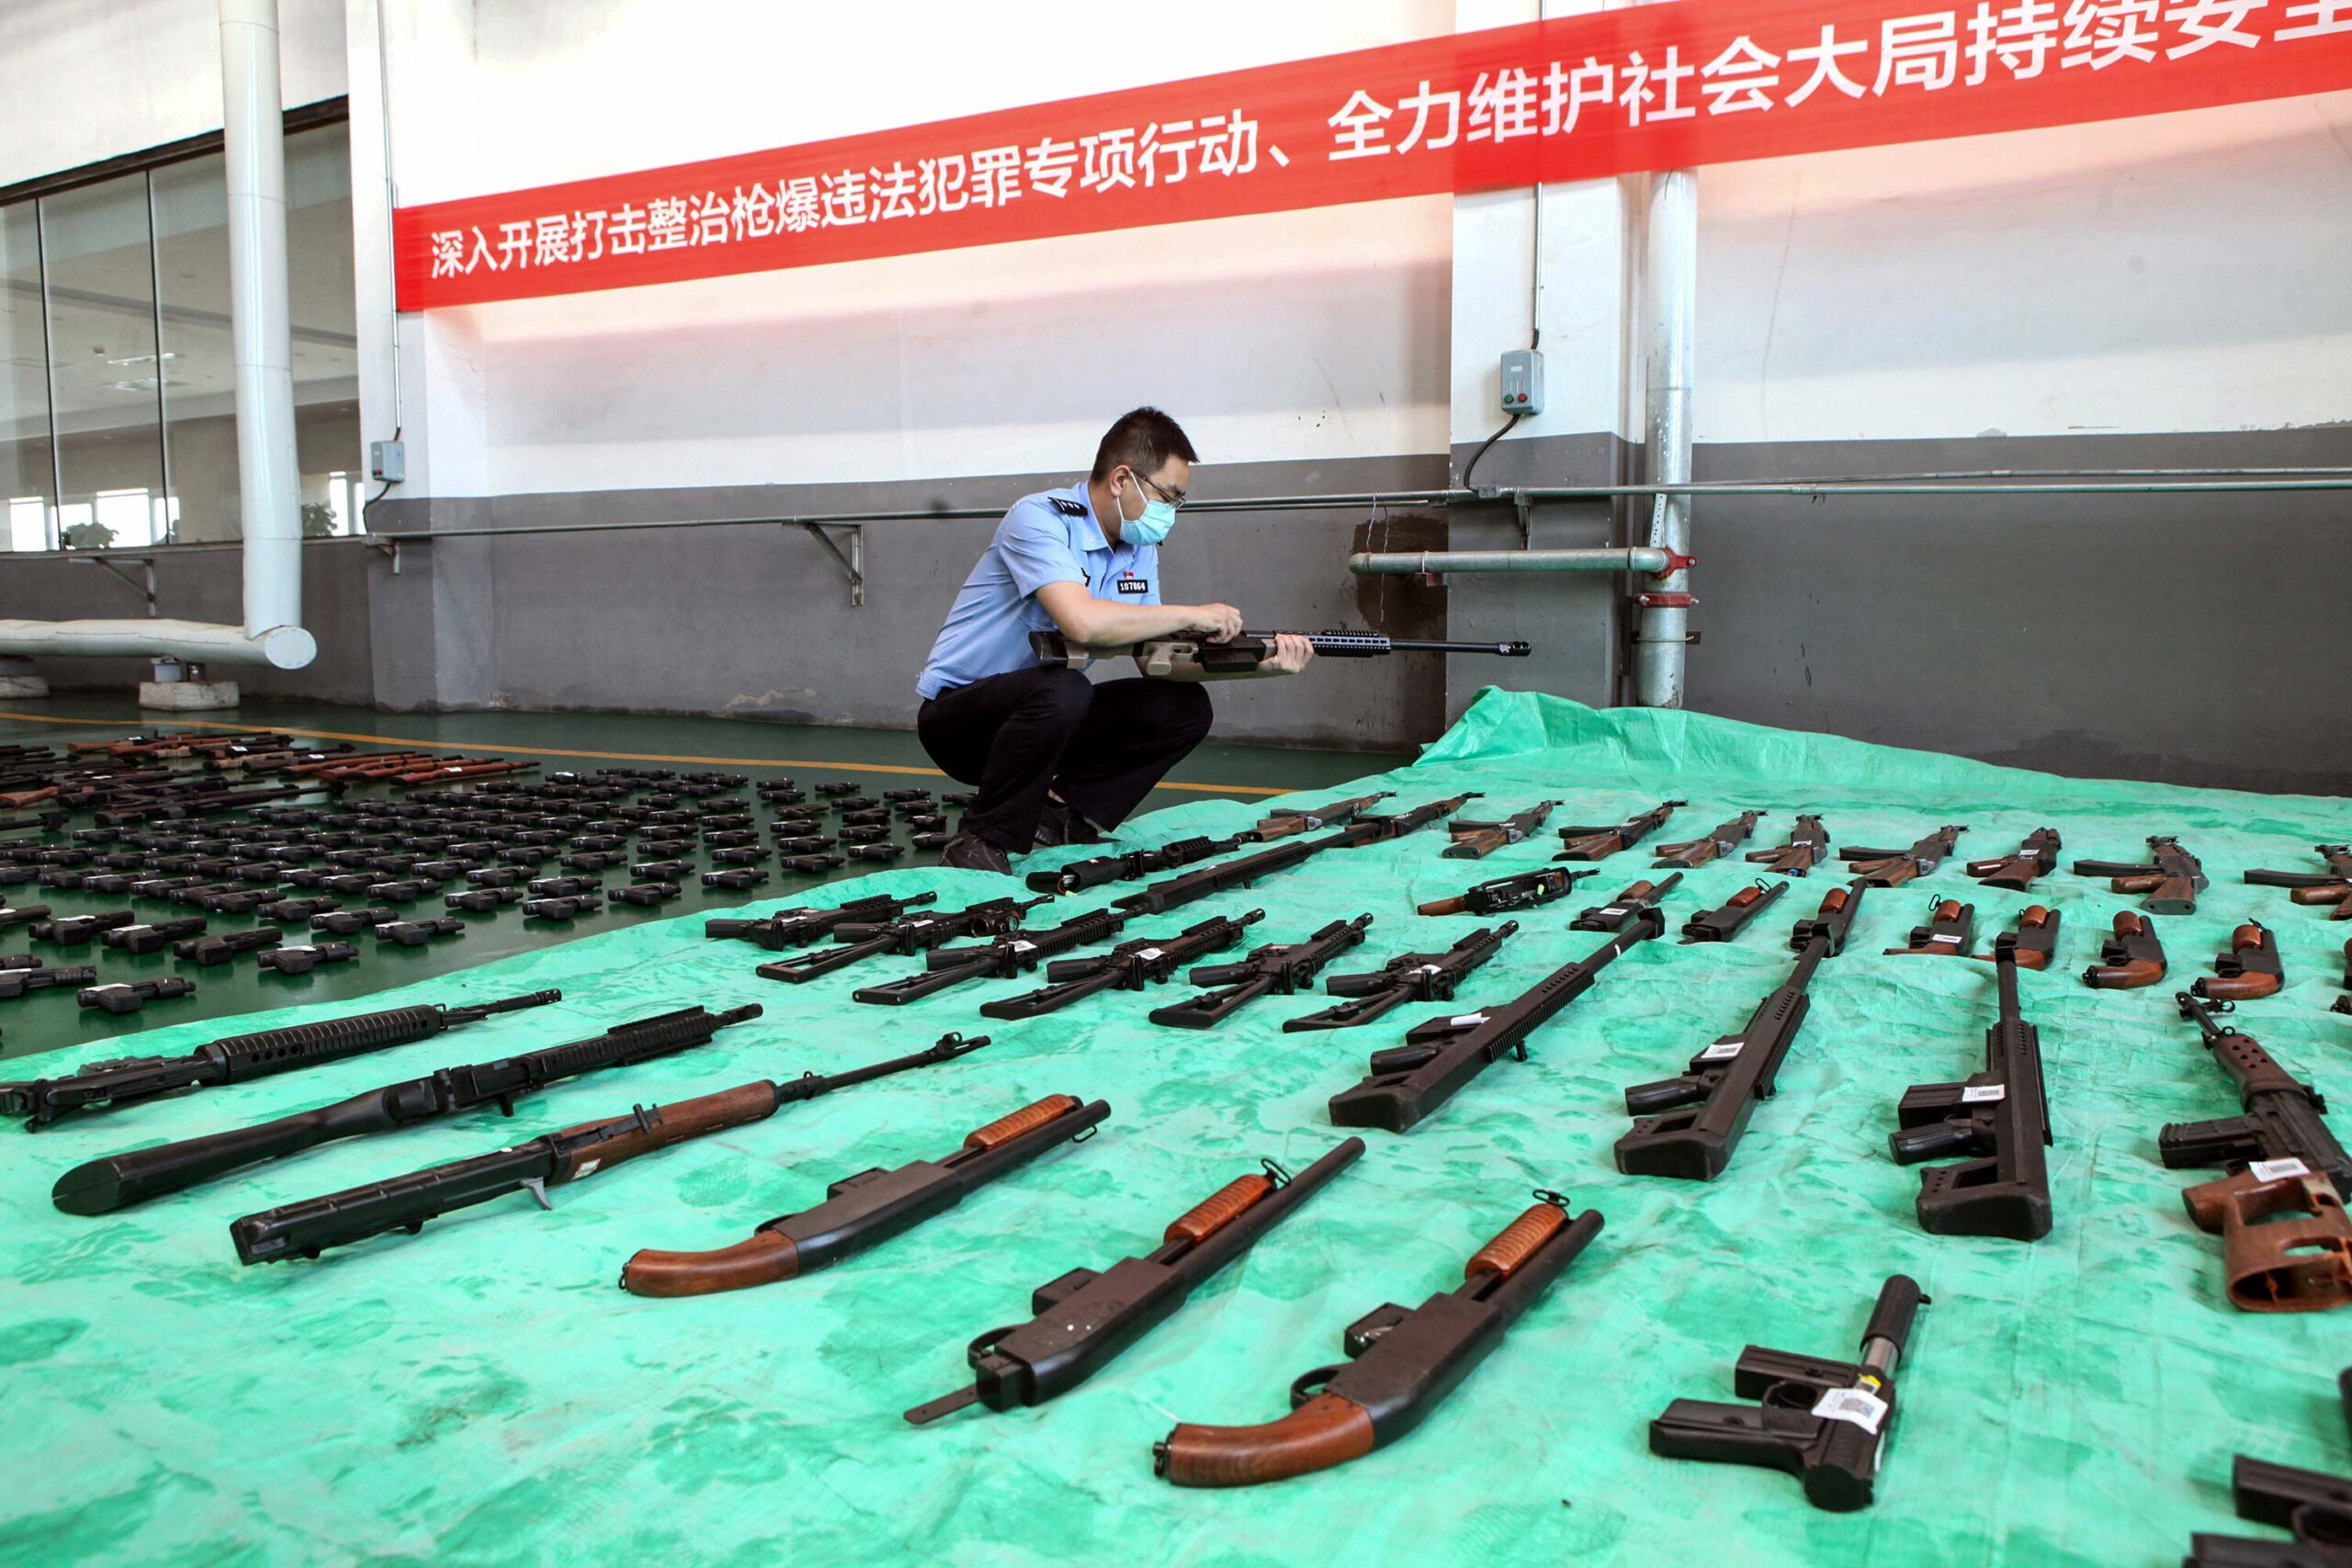 <i>STR/AFP/Getty Images</i><br/>A police officer inspects confiscated illegal guns slated for destruction at an incineration facility in Shenyang